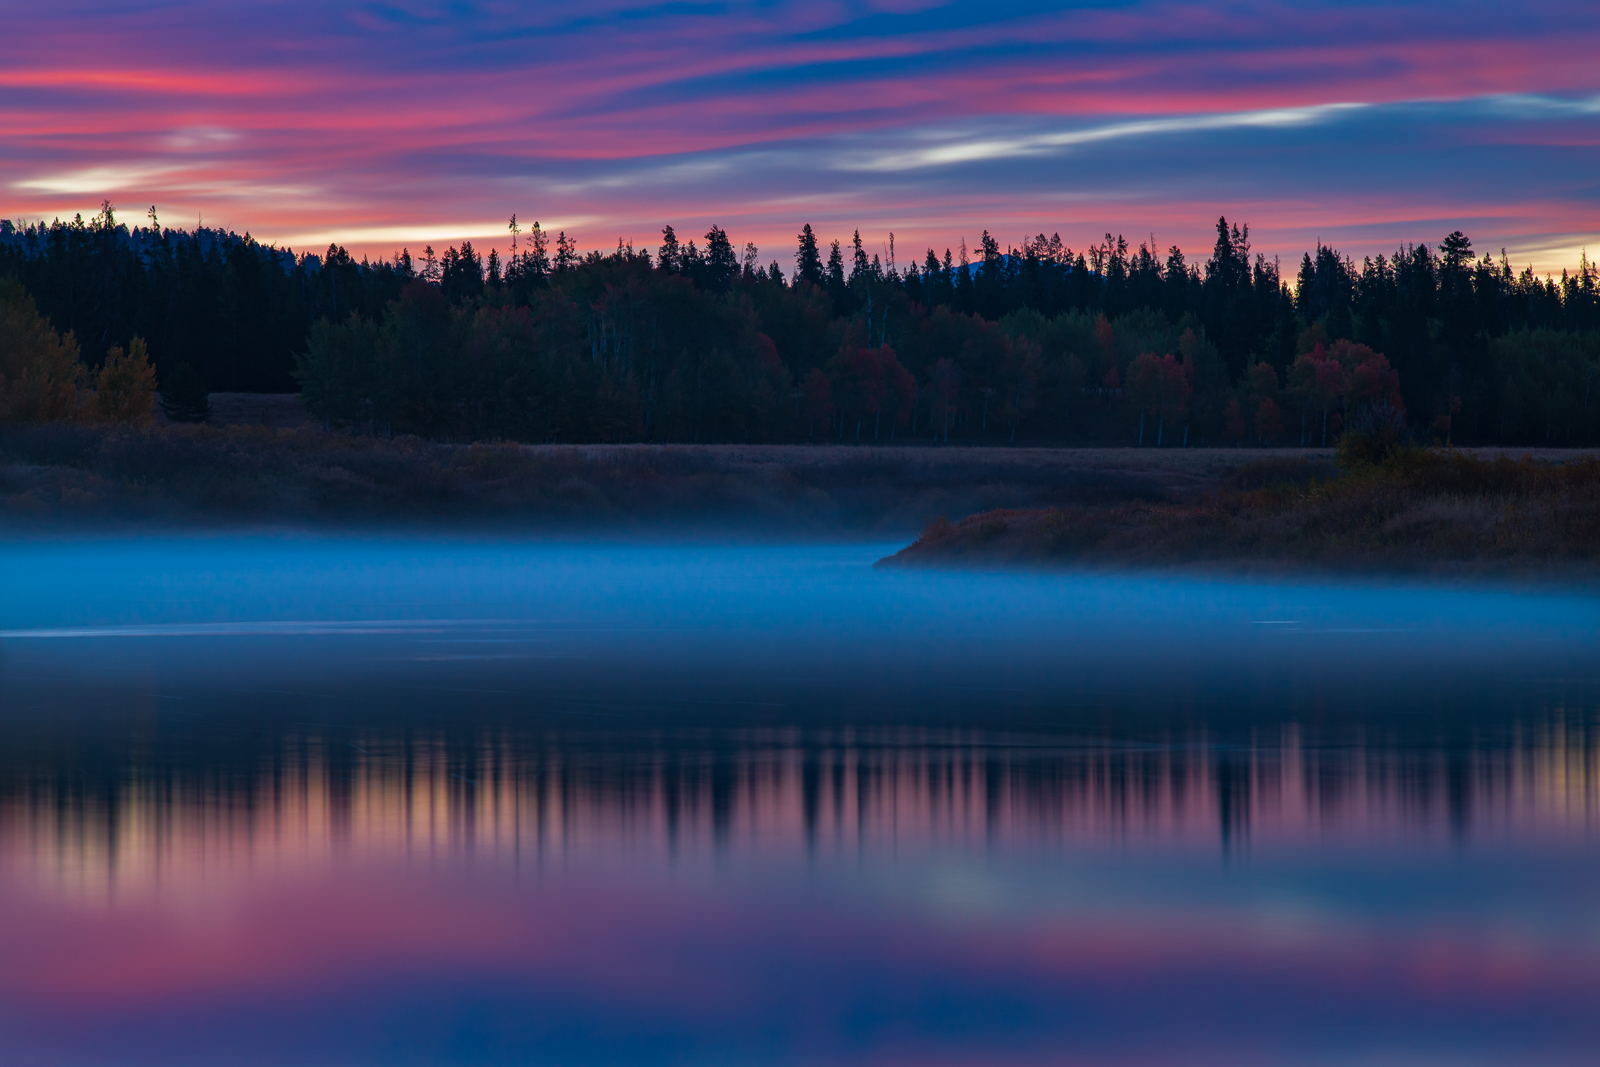 Autumn sunrise reflections along the Snake River near Ox Bow Bend.Add beauty to your space with a Joseph Rossbach limited edition...